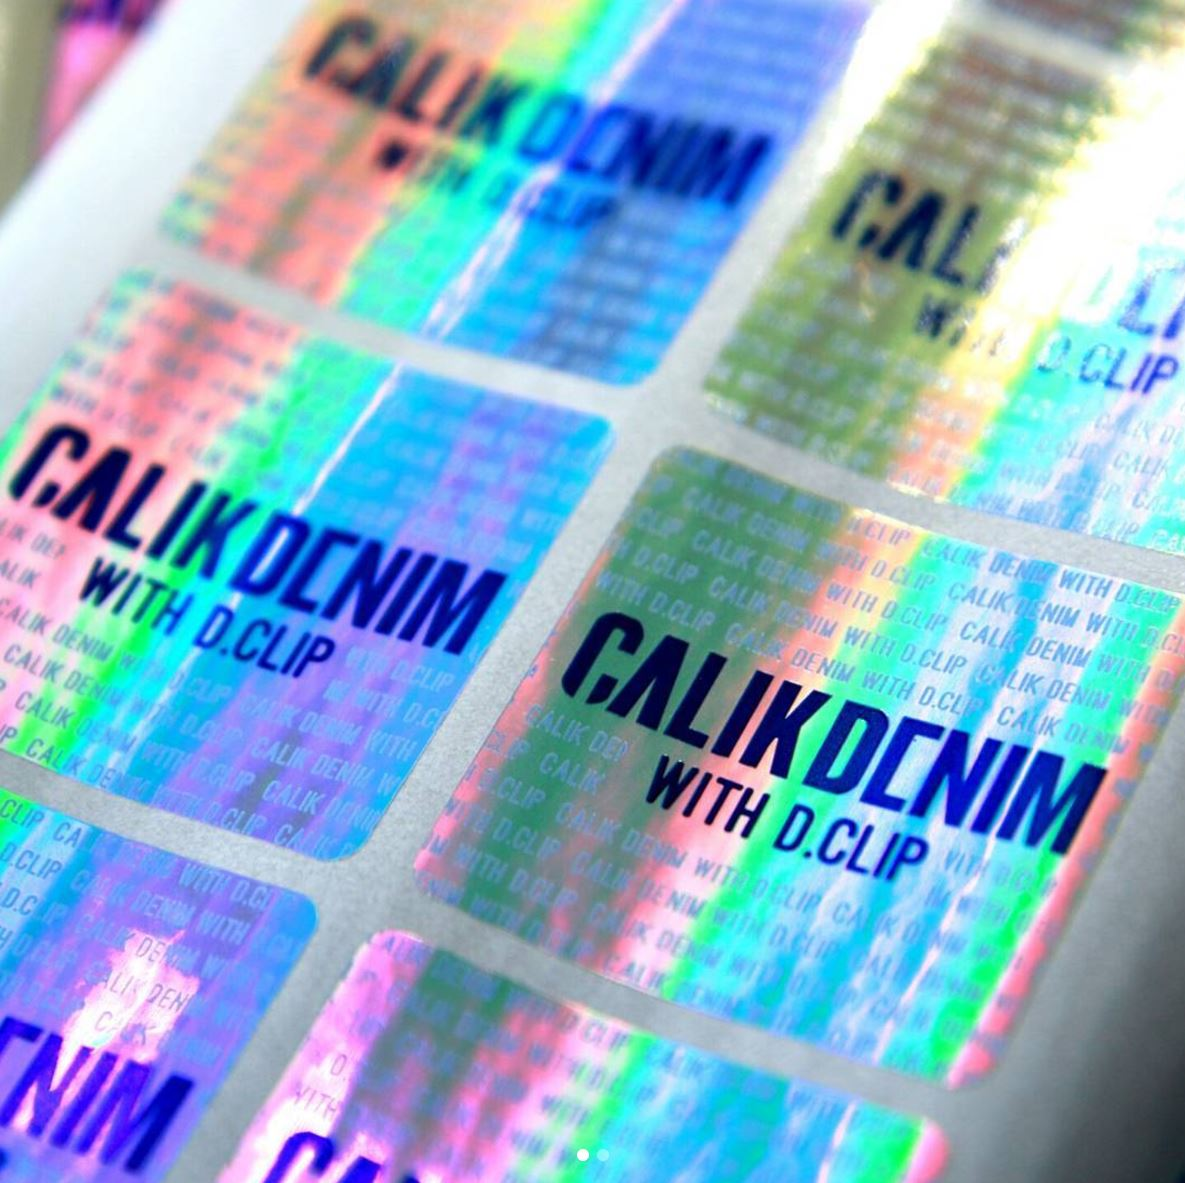 D.clip X Calik Denim